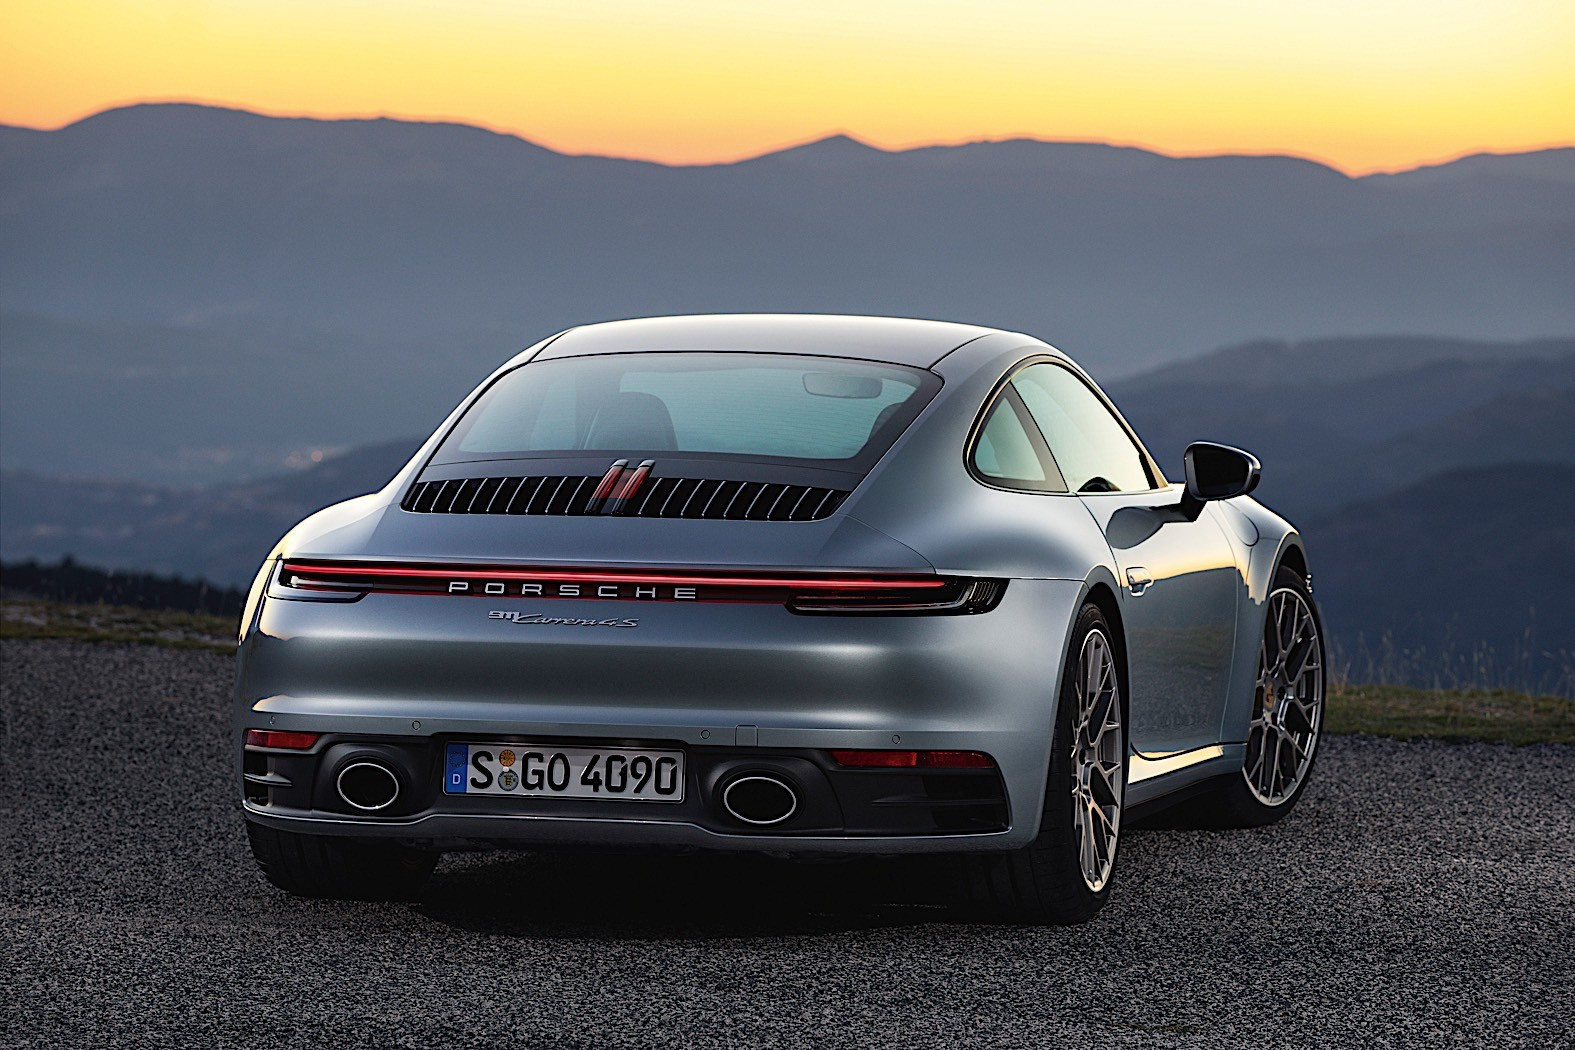 2020 Porsche 911 Carrera S and 4S with 443 HP Rock the ...